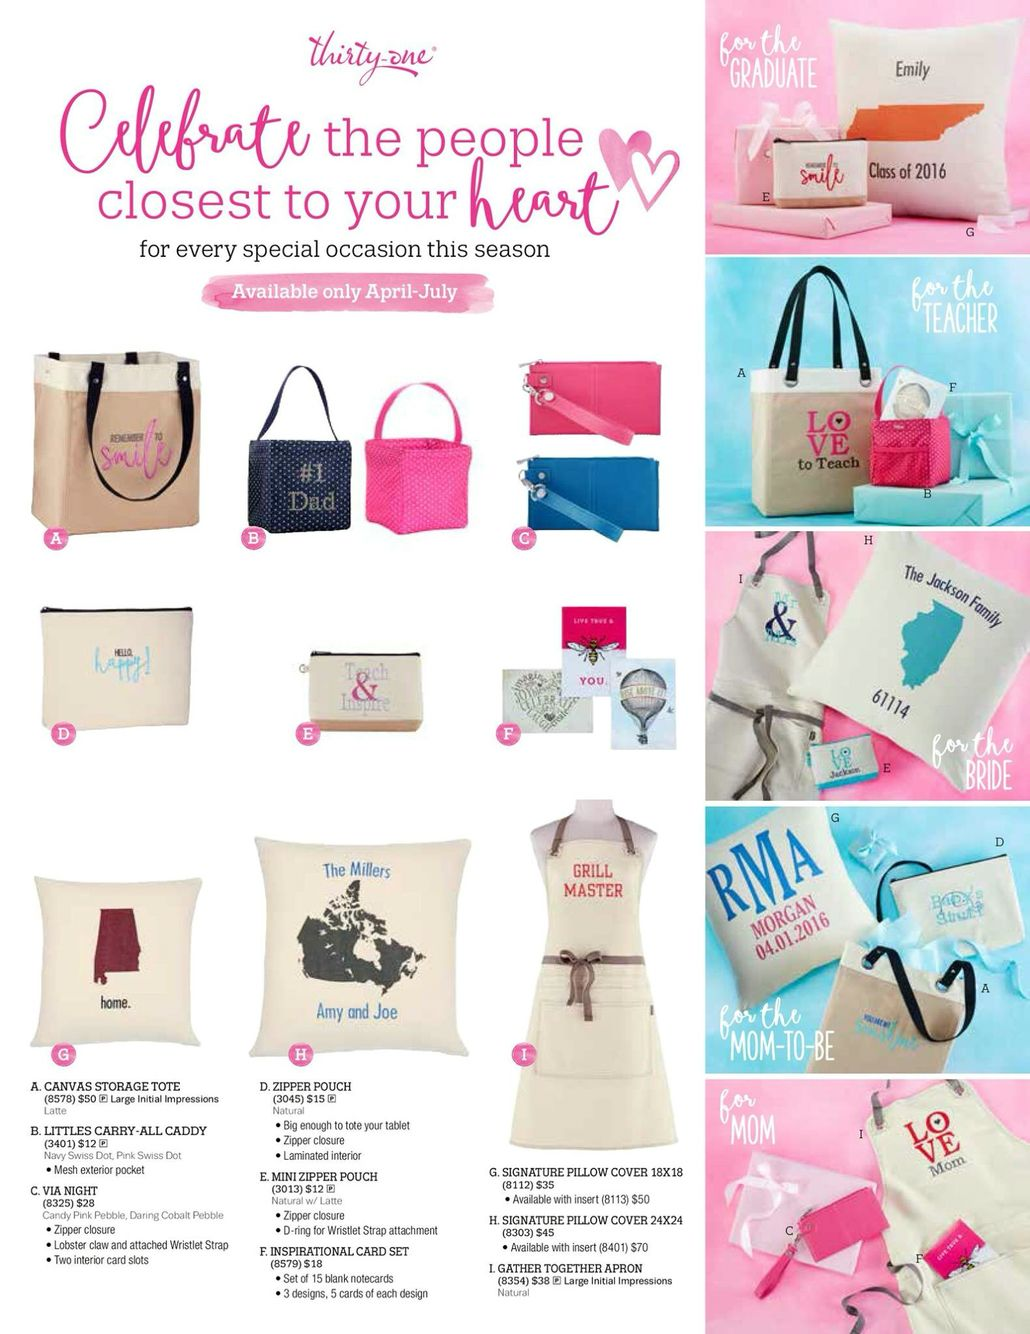 awesome ideas for graduation gifts from thirty one gifts 1 31 spring gift guide thirty one gifts 2016